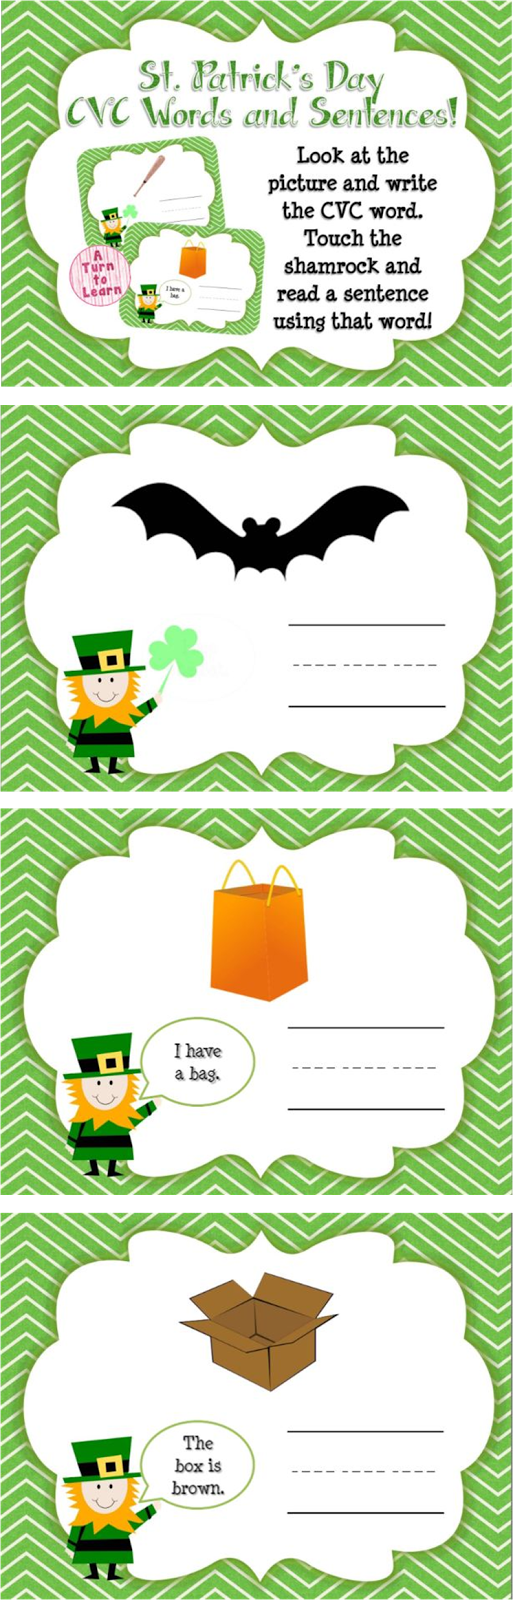 http://www.teacherspayteachers.com/Product/St-Patricks-Day-CVC-Words-and-Sentences-Smartboard-Game-1162867